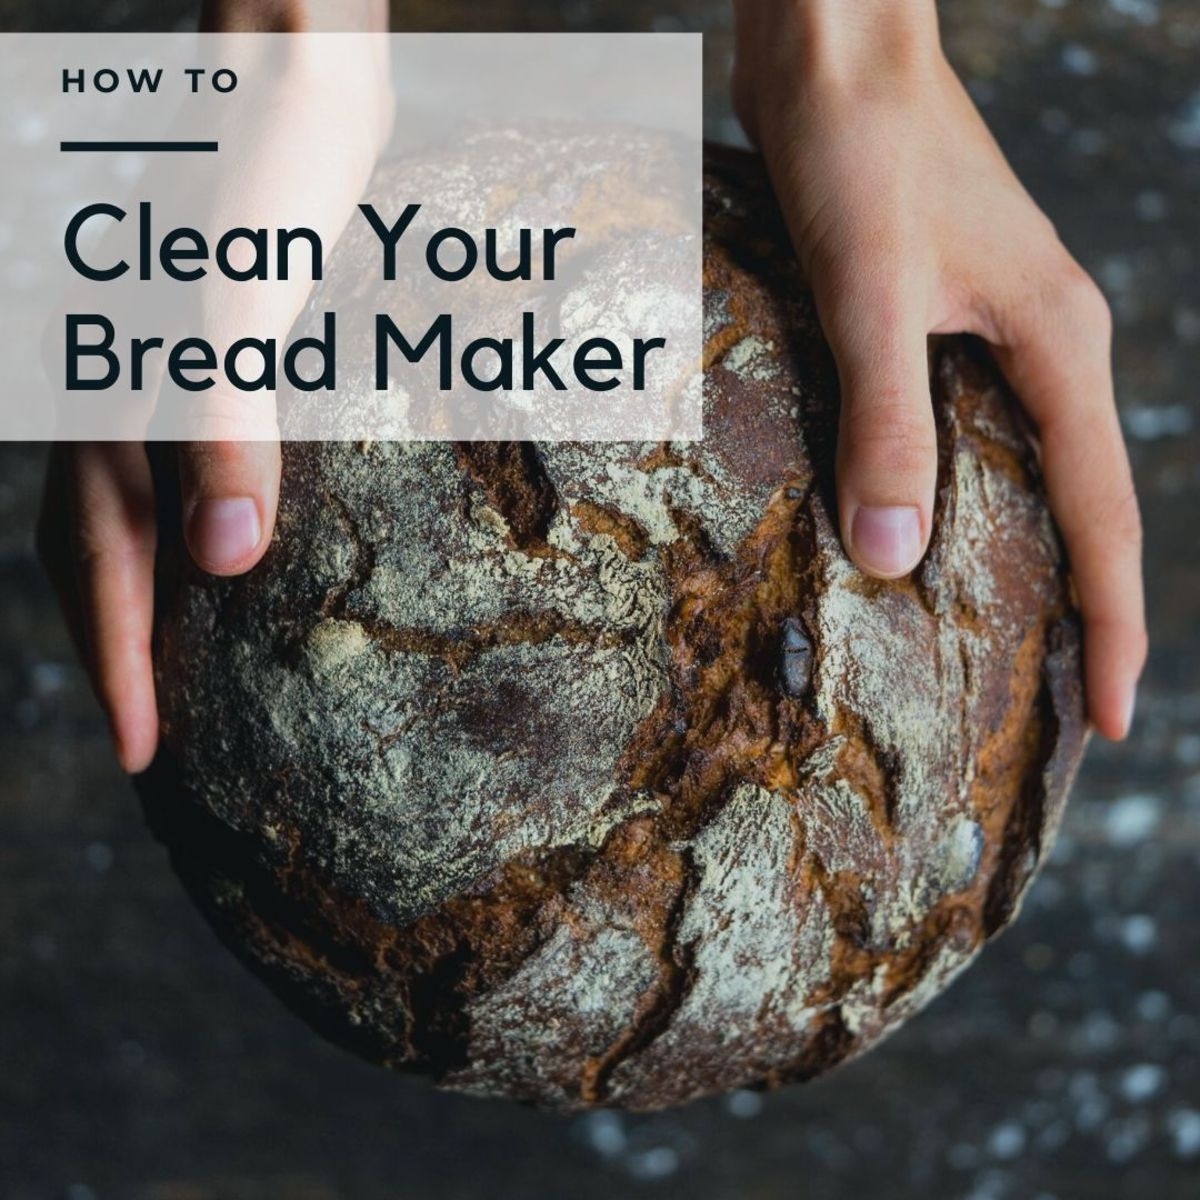 How to Clean a Bread Maker in 4 Easy Steps